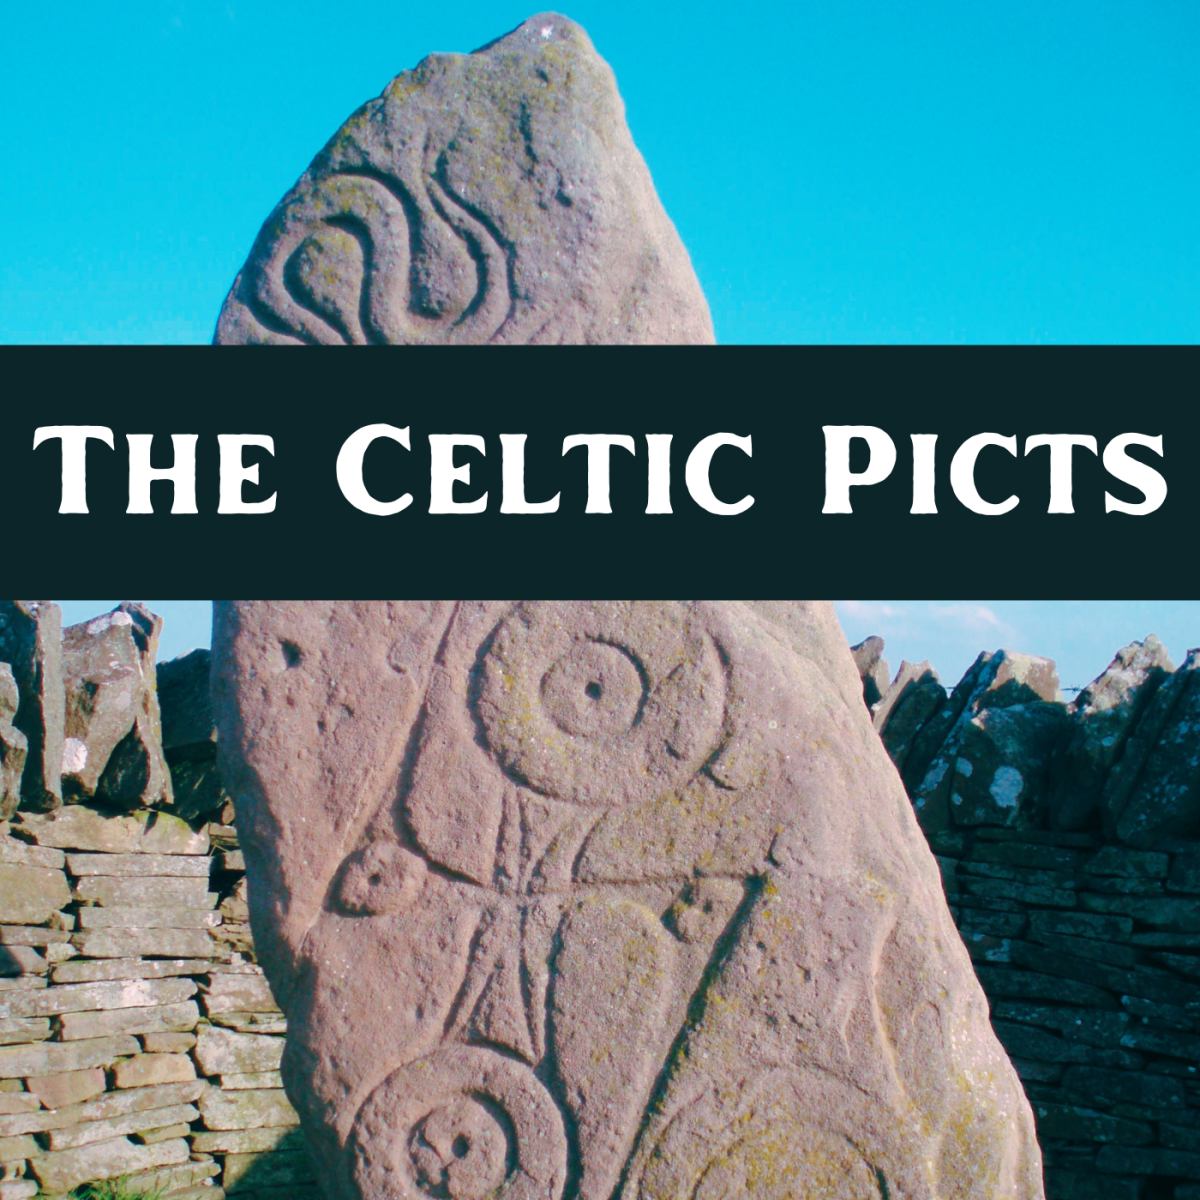 The Celtic Picts of Scotland